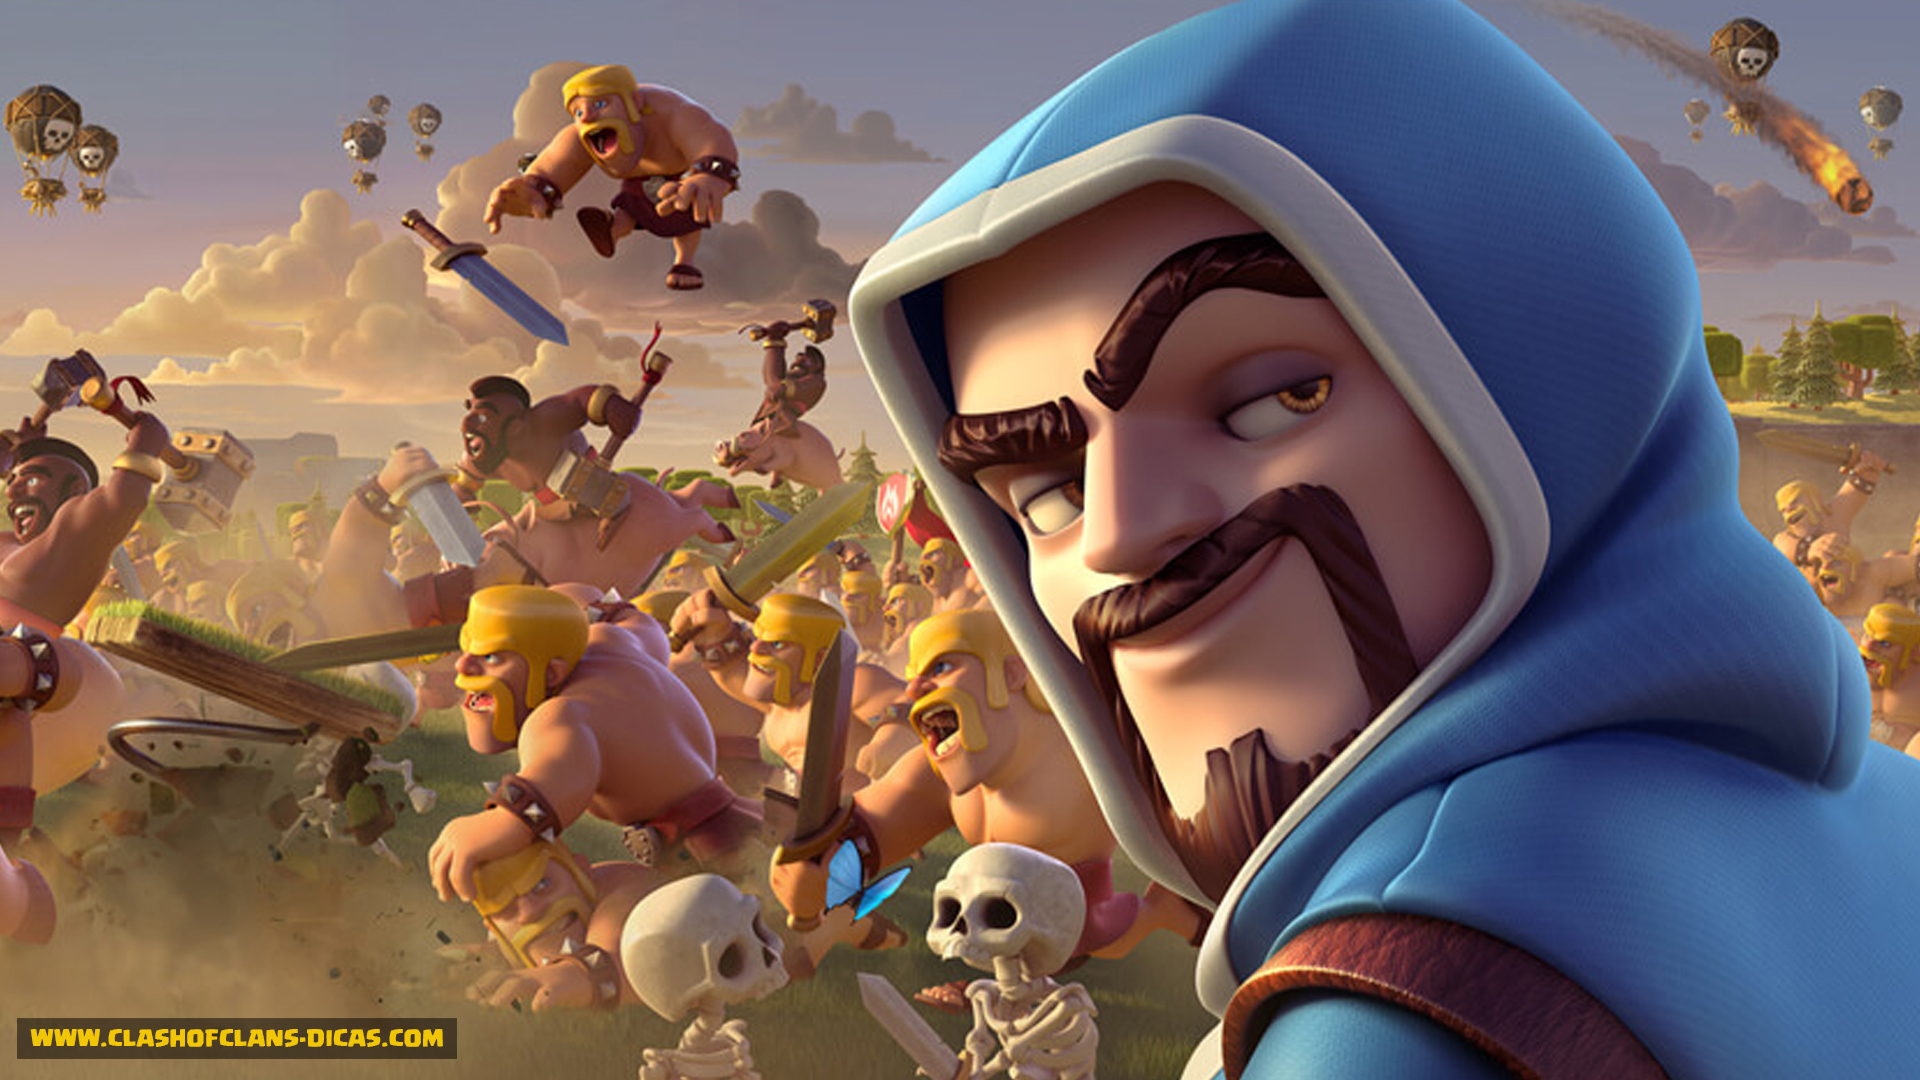 Clash Of Clans Wallpaper Troops Dota and ESports Geeks Dota 1920x1080